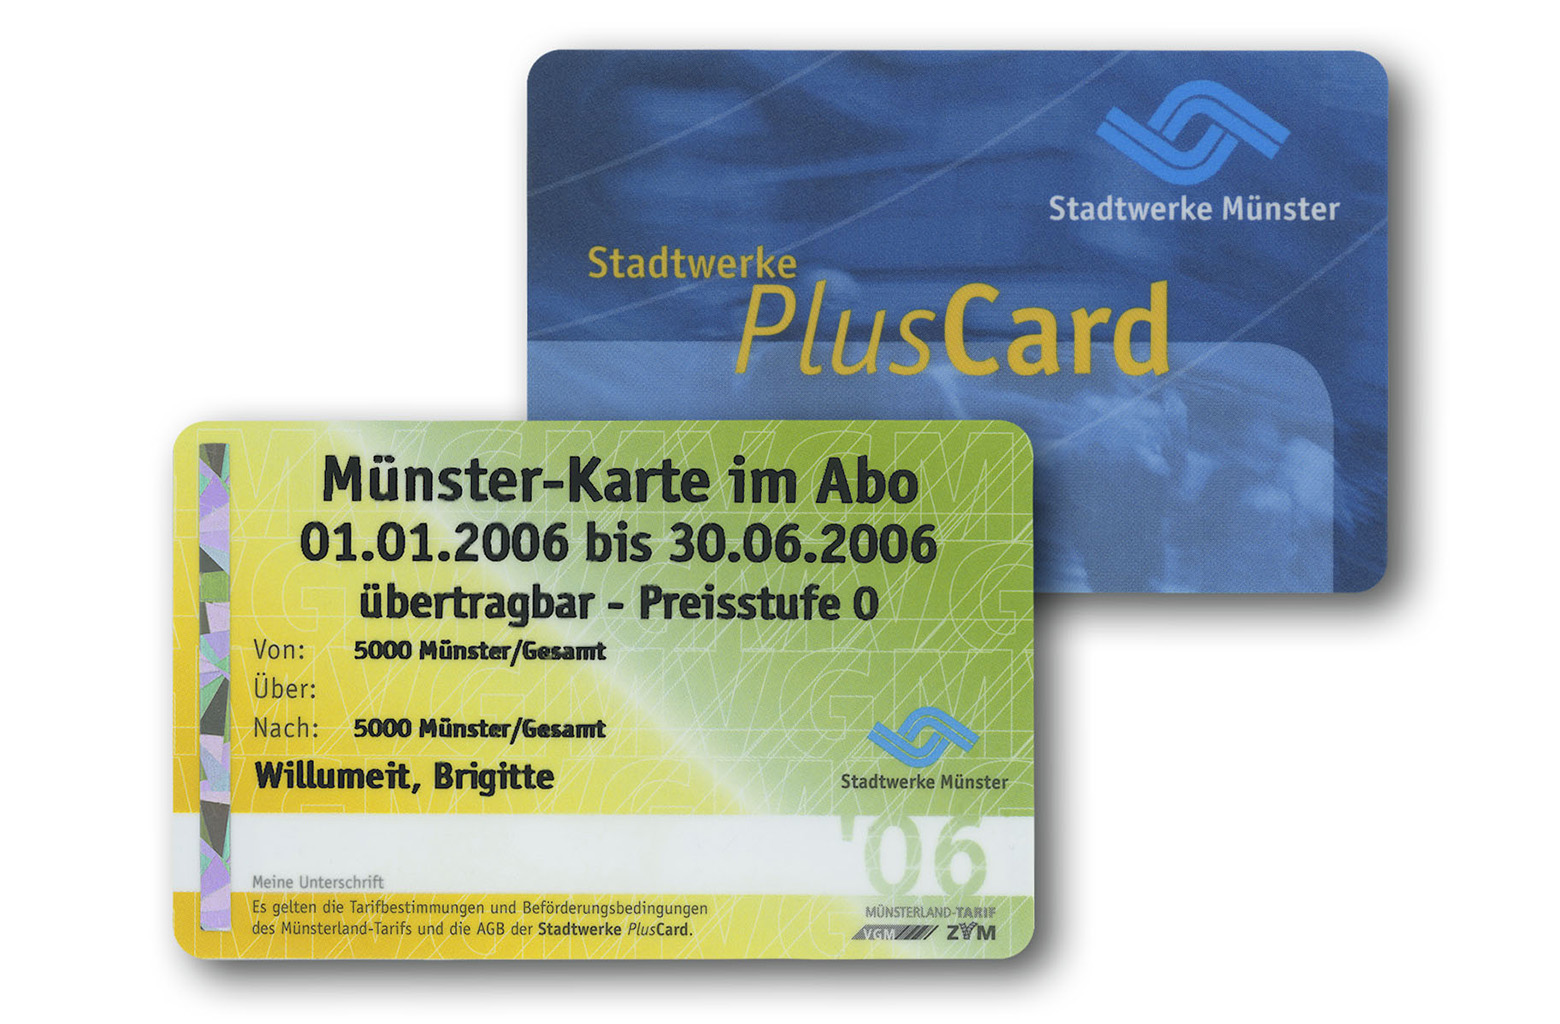 Print Security Printing Ticket RFID contactfree cards Fleischhauer